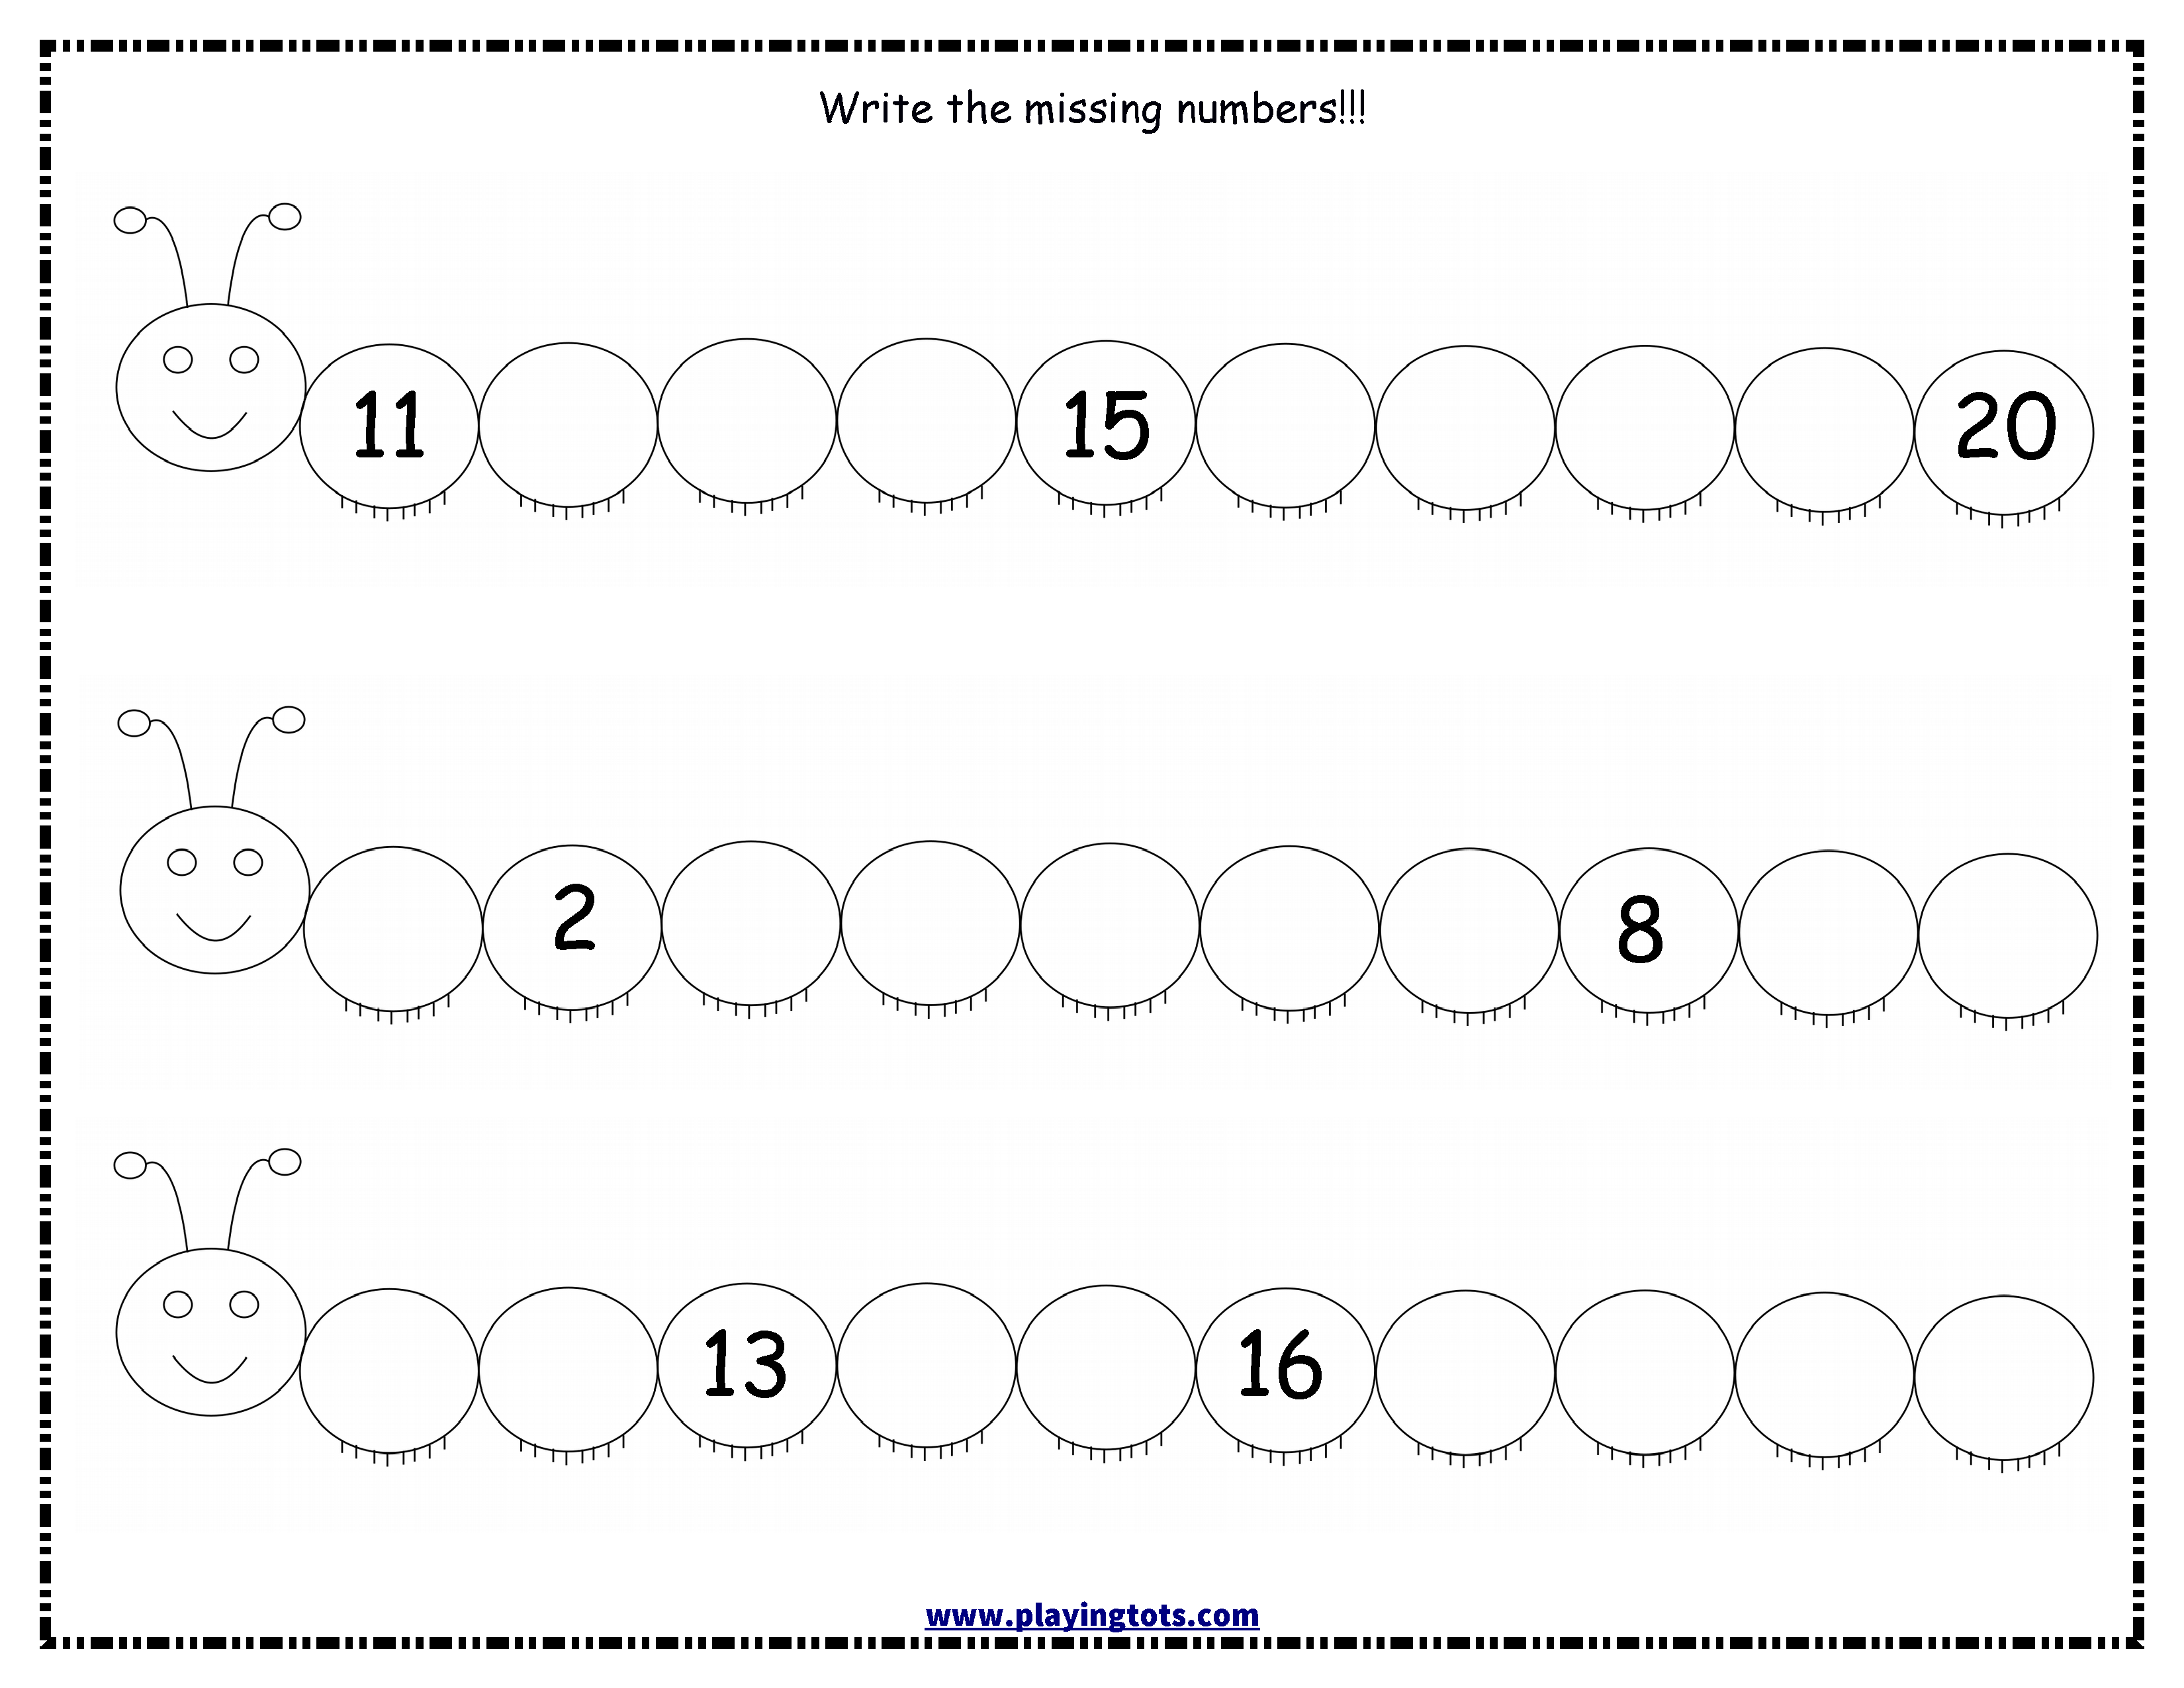 Worksheet Write Missing Numbers Caterpillar Keywords Free Prin Number Worksheets Kindergarten Winter Math Worksheets Pattern Worksheets For Kindergarten